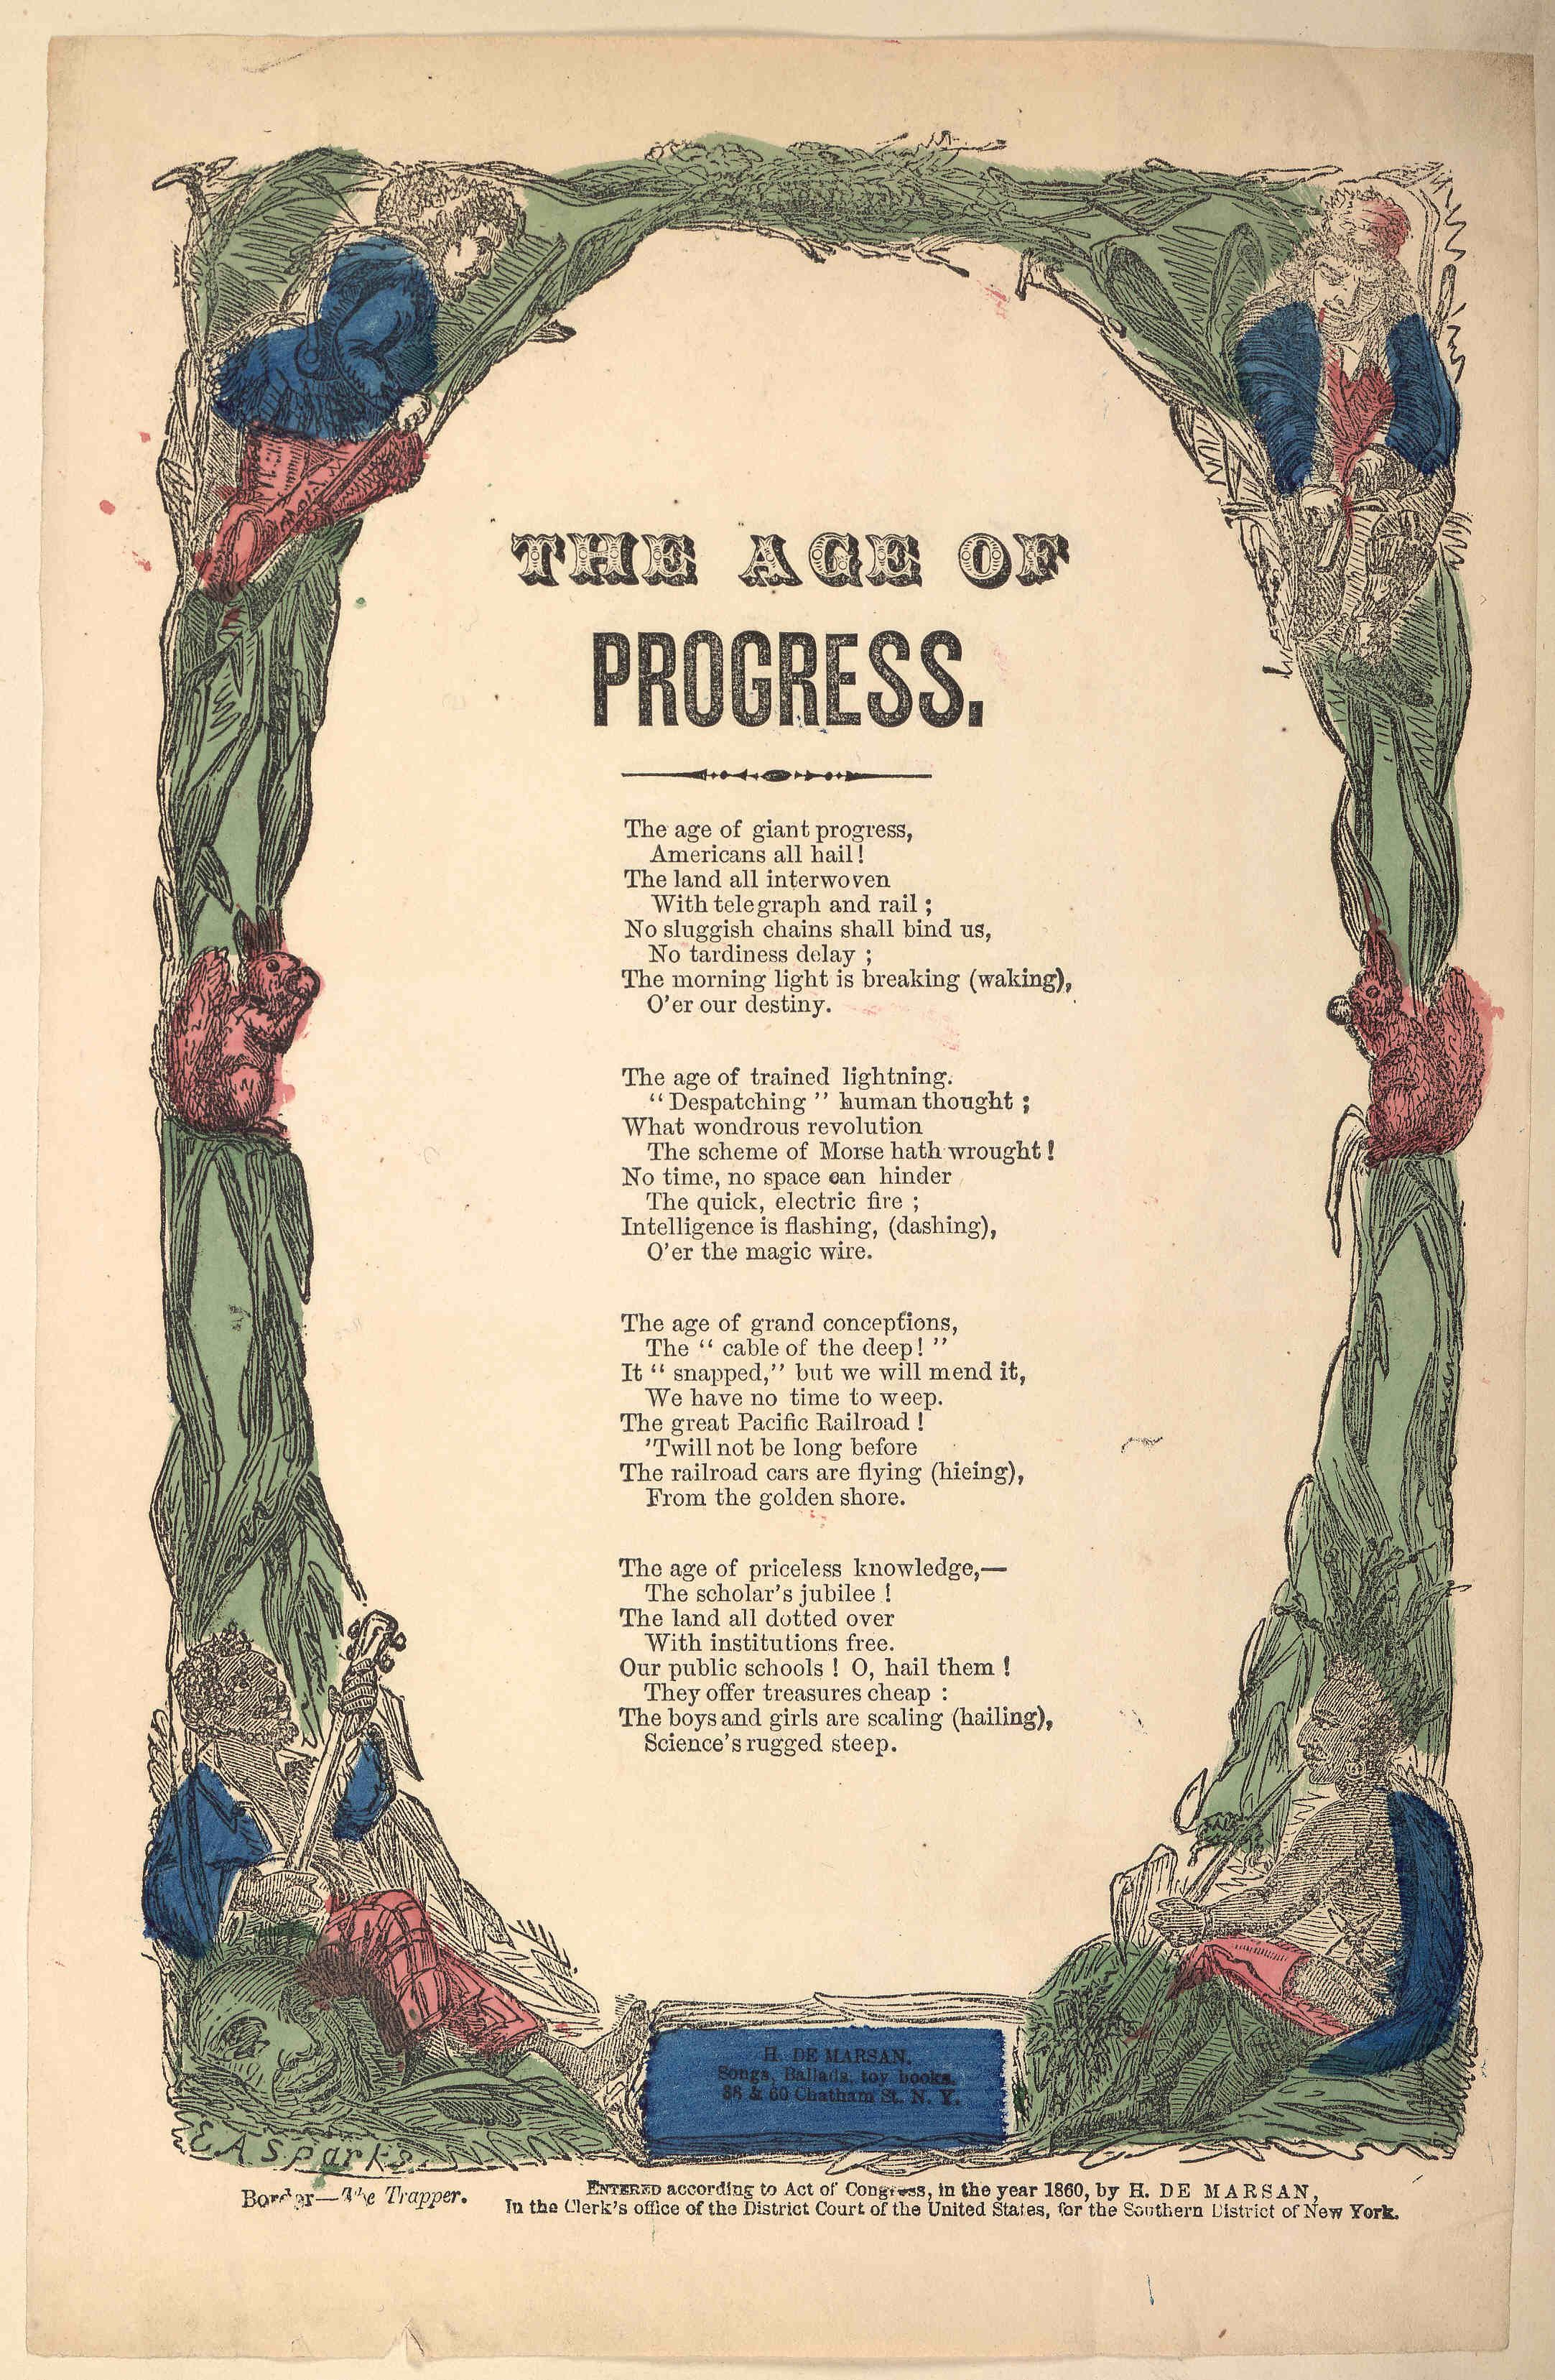 The Age Of Progress Song About How Technological